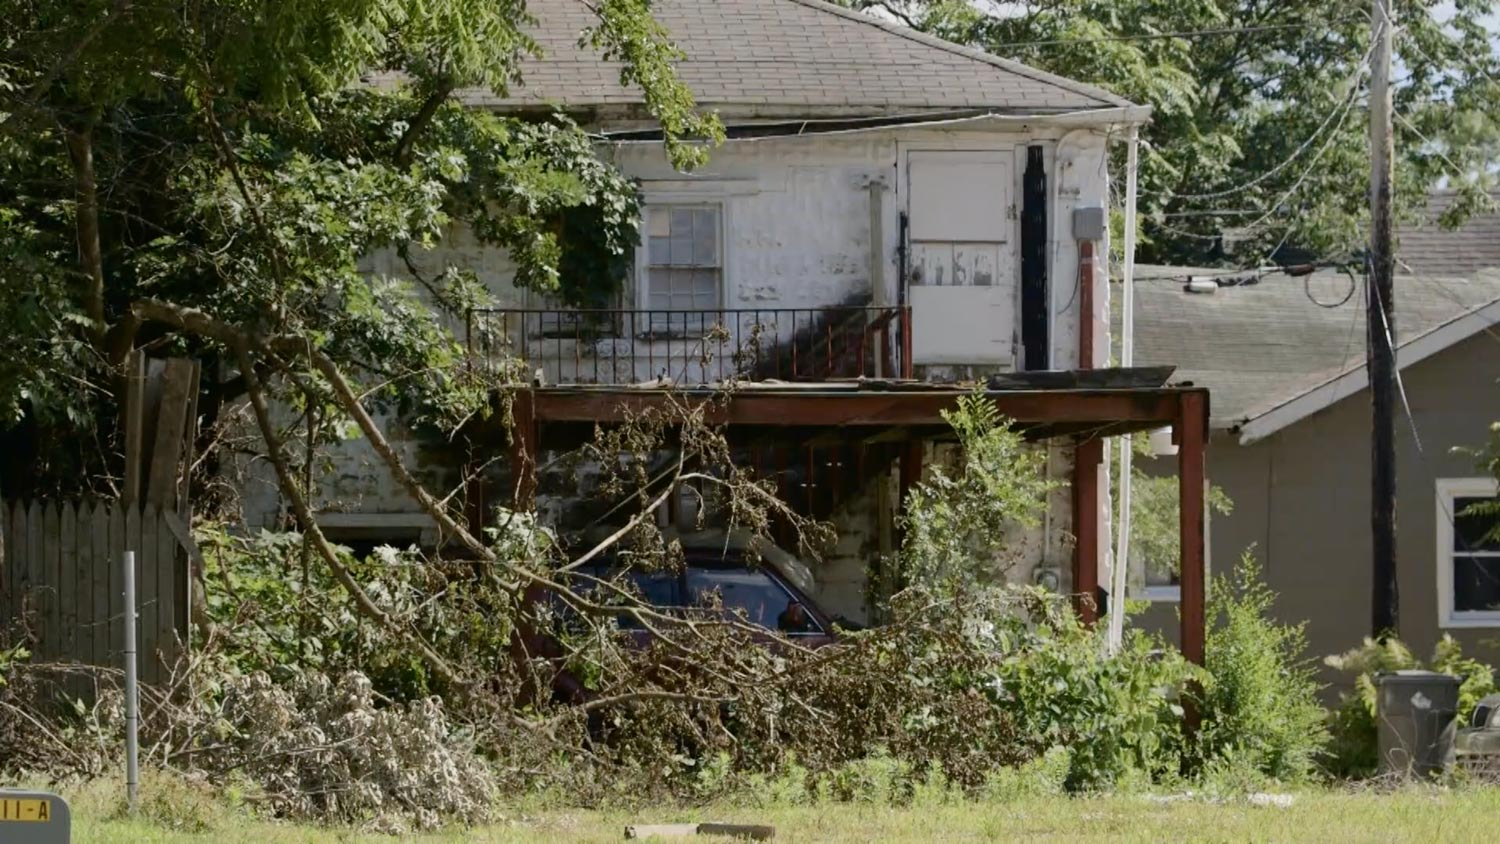 50+ Abandoned Houses - Abandoned and vacant houses contribute to blight and crime